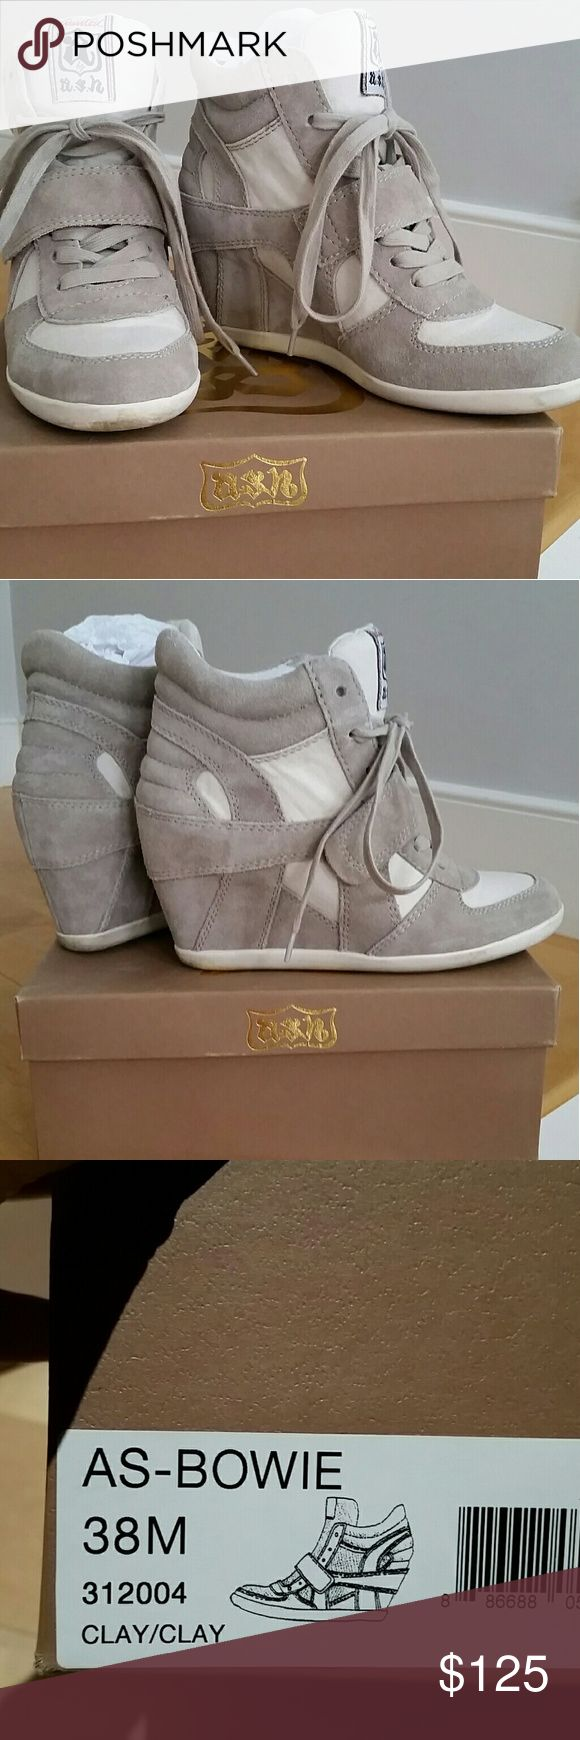 ASH Bowie platform sneaker in Clay color Sassy style! Gently used and in great condition, super comfy  platform sneaker. Original box included Ash Shoes Platforms